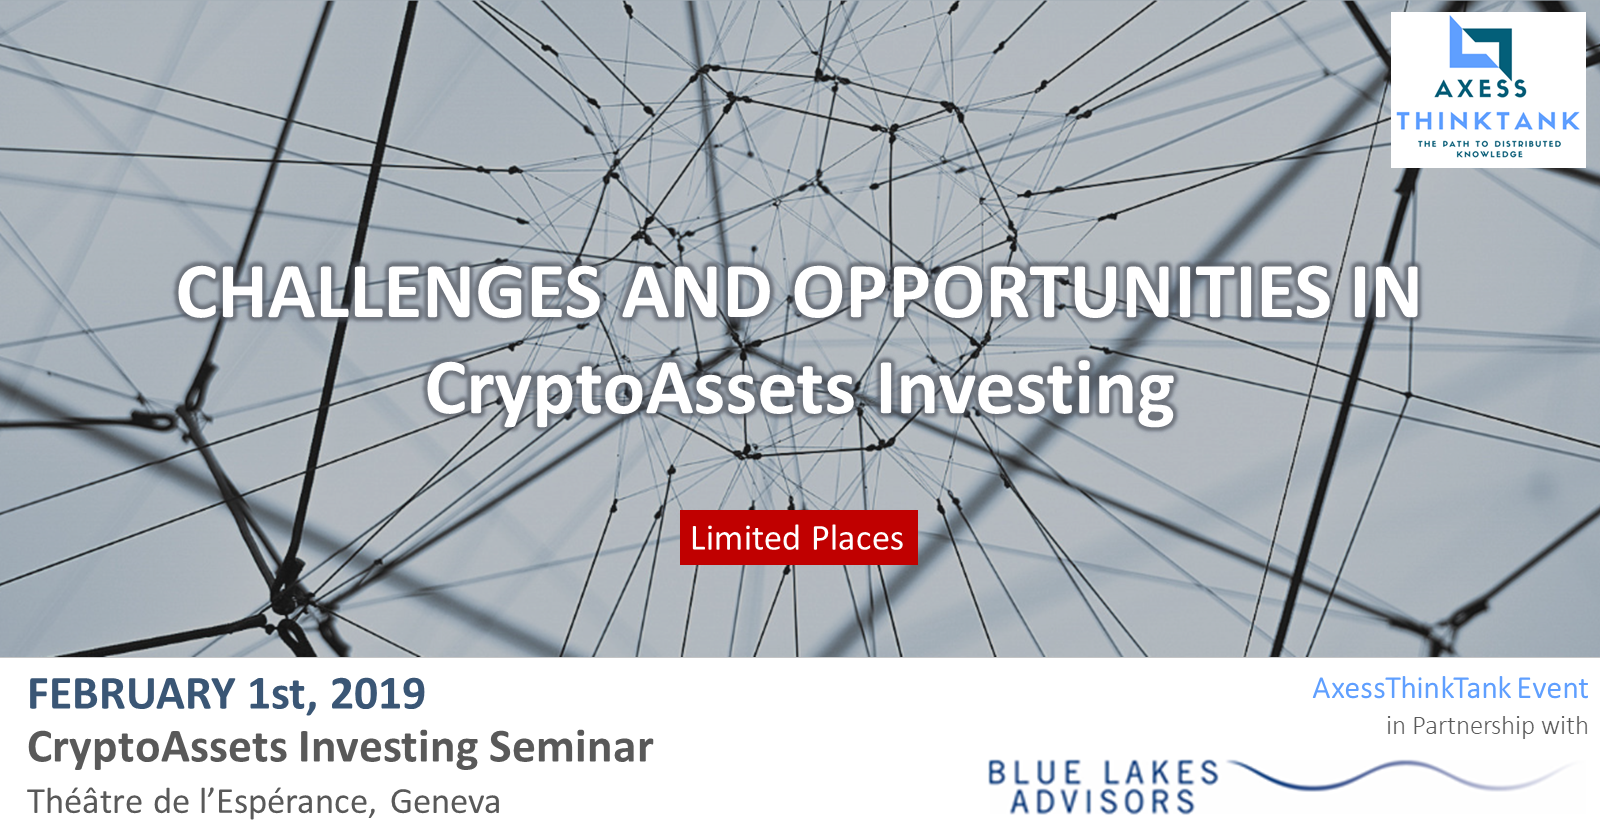 Blue-Lakes-Advisors-invesment-finance blog-ATT Event - LinkedIn - 11.01.2019